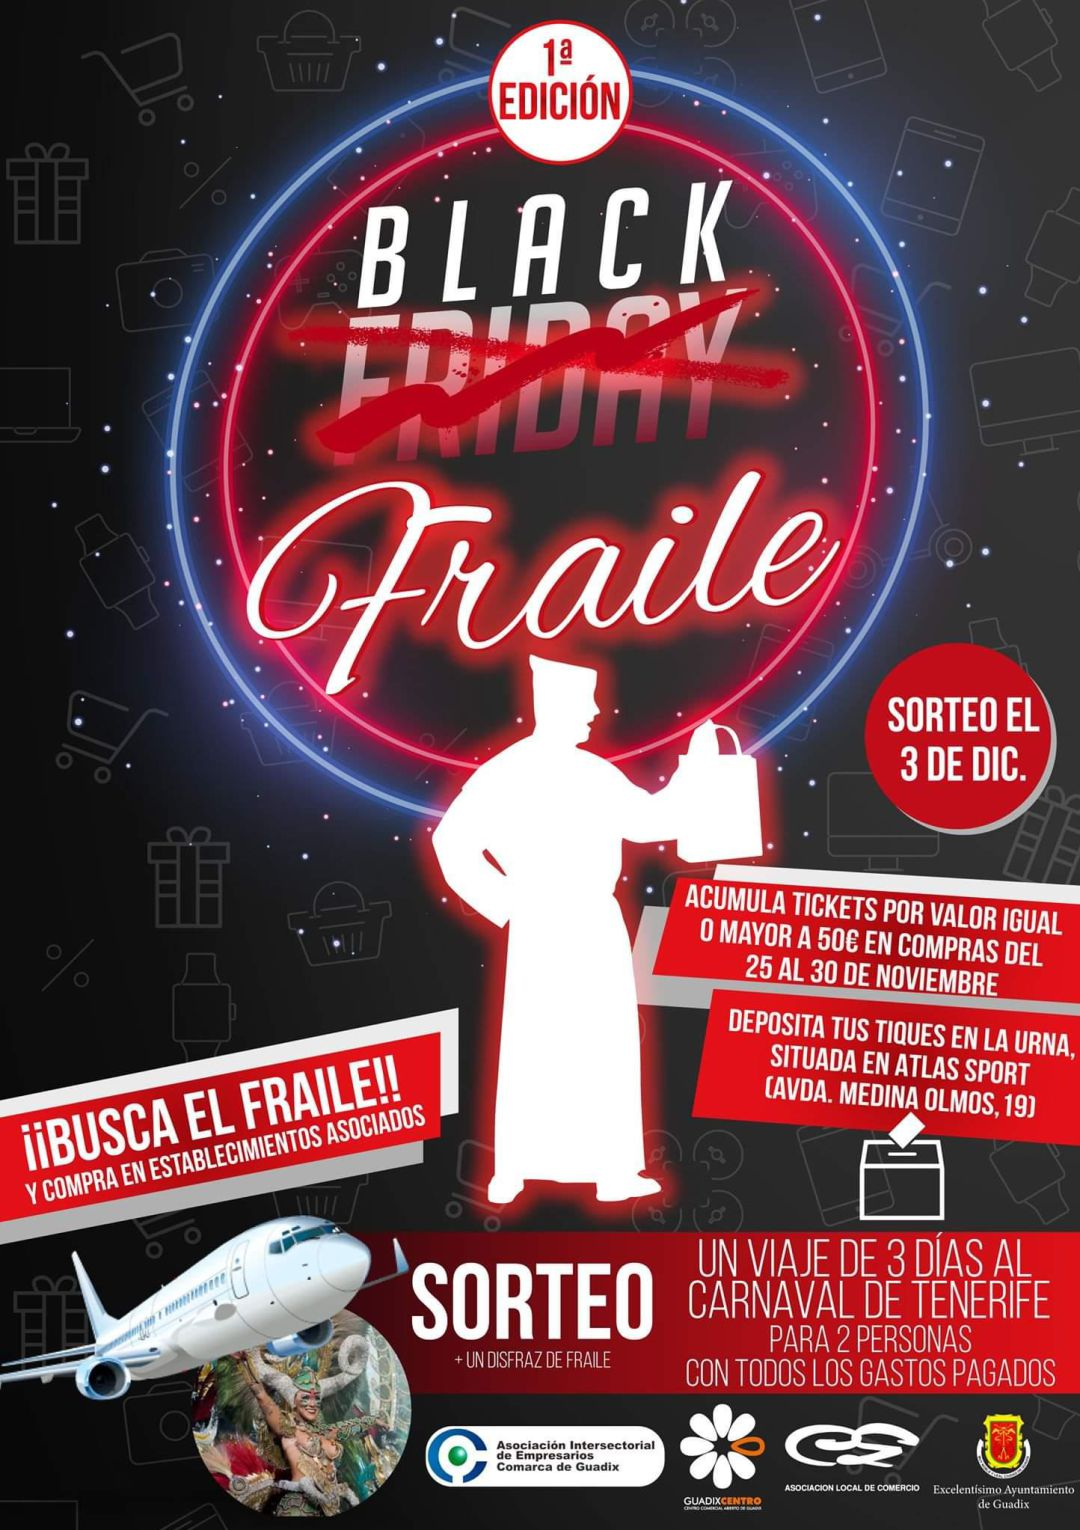 Black Friday en Guadix